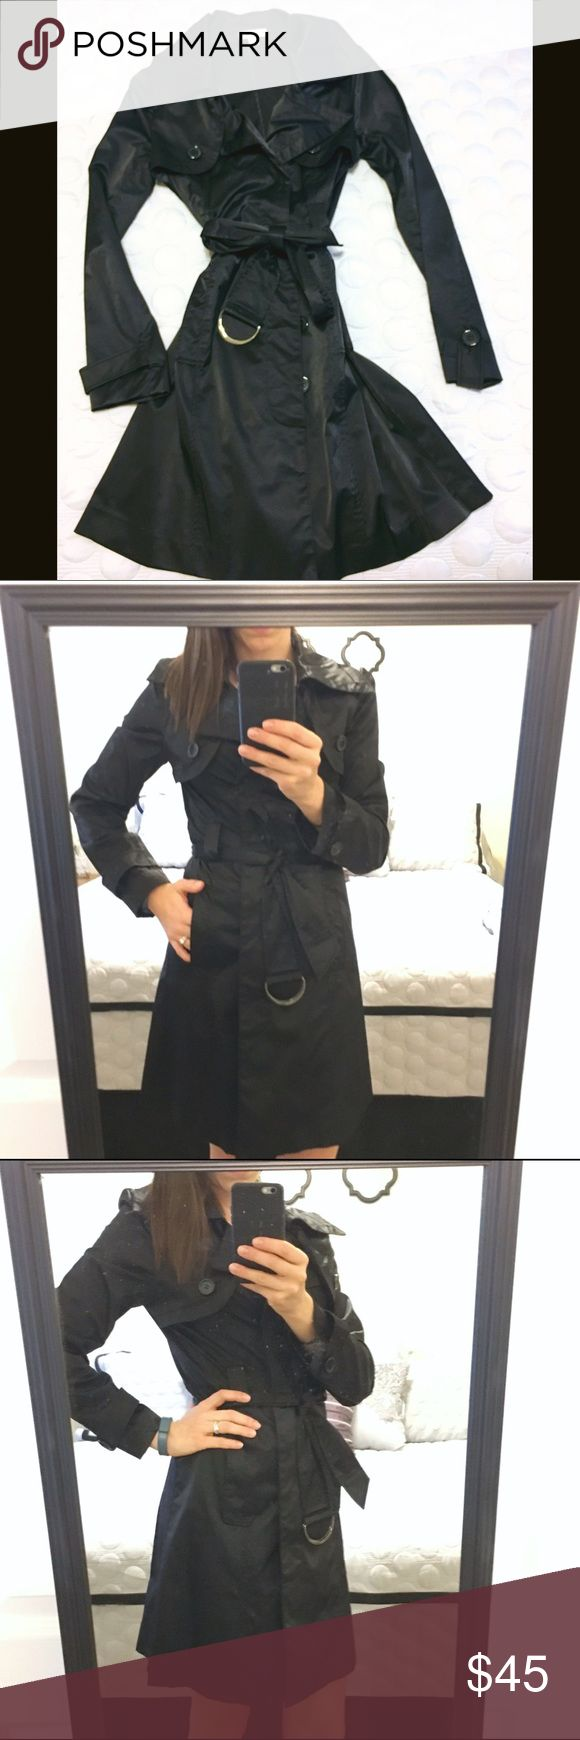 F21 Black lightweight trench coat Black lightweight trench coat from Forever 21. Satiny material. Like new! Forever 21 Jackets & Coats Trench Coats